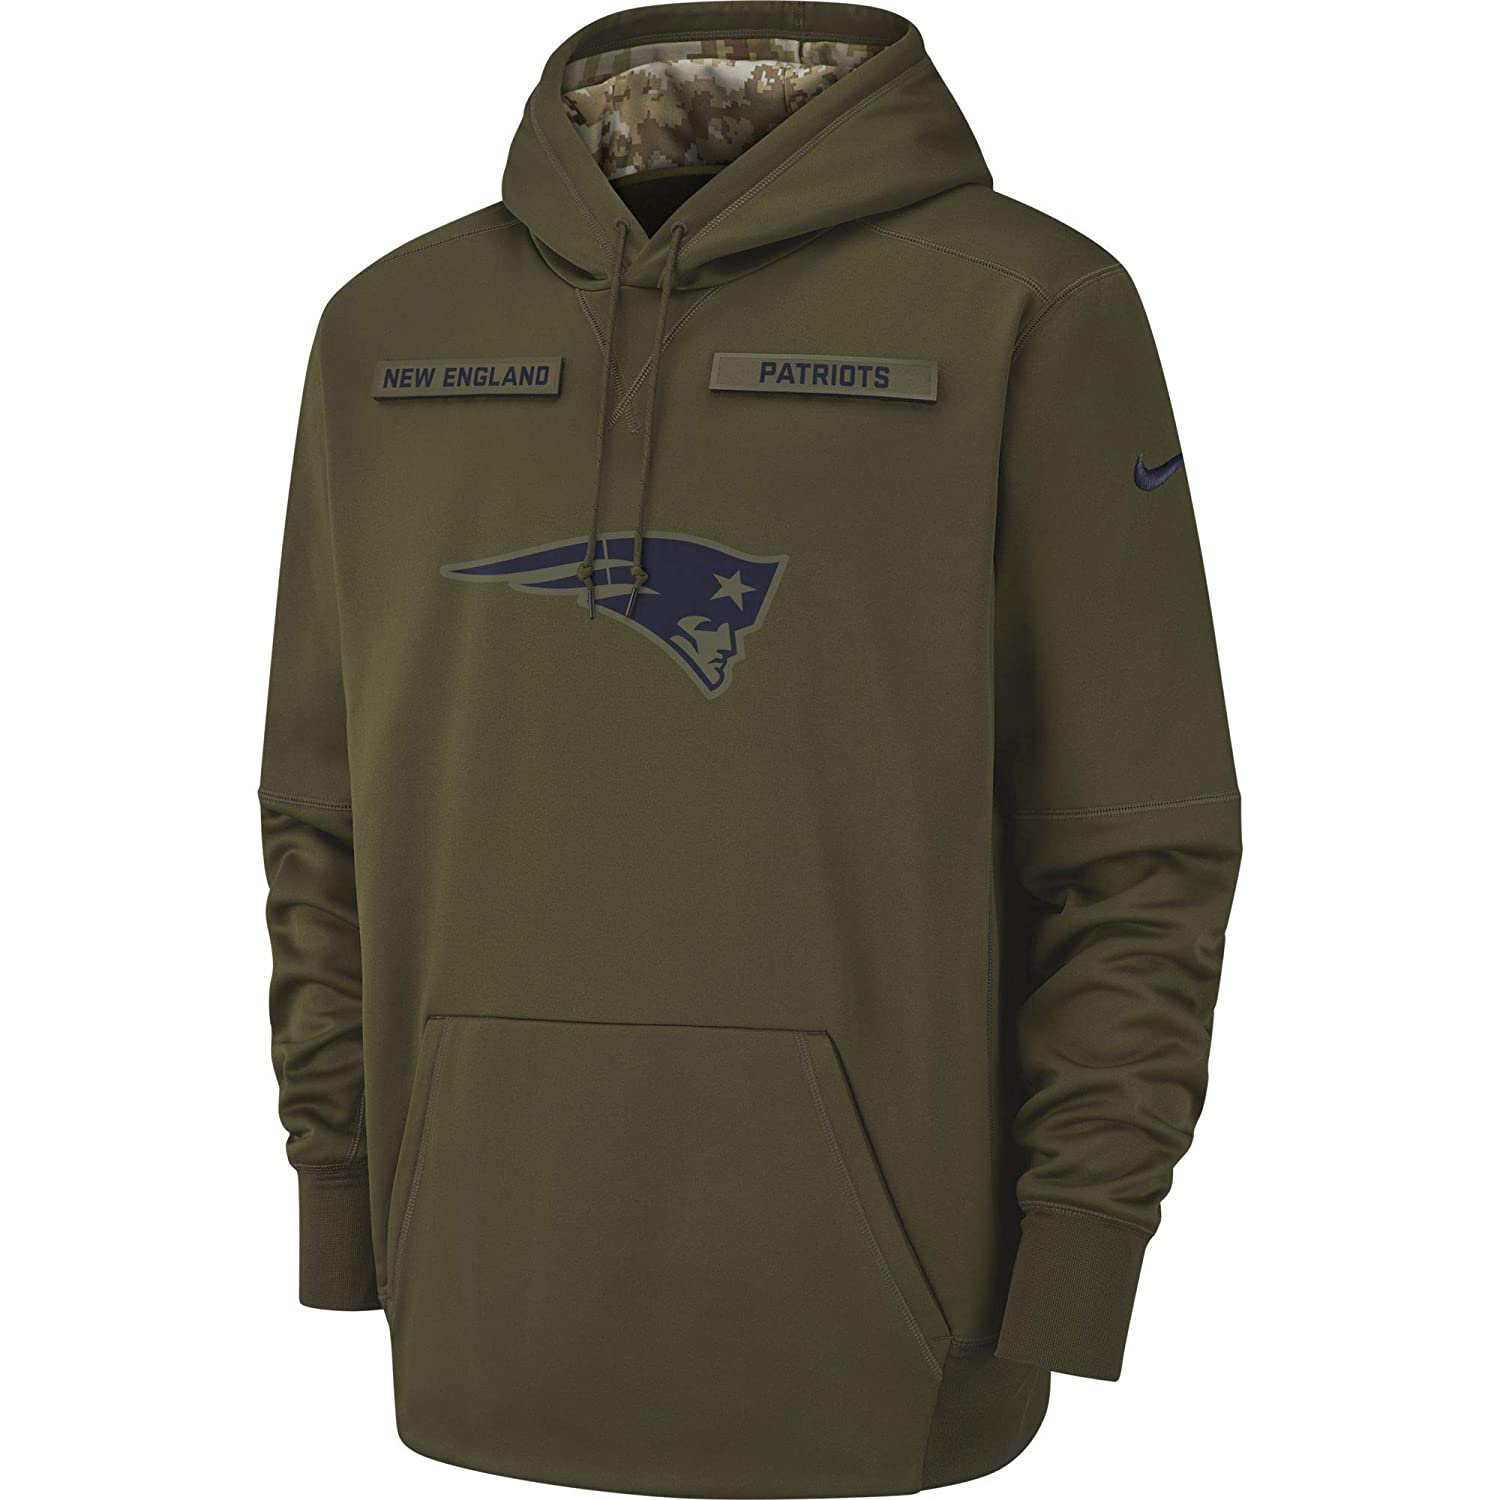 info for 95751 3f492 Nike Men's New England Patriots Therma Fit Pullover STS Hoodie